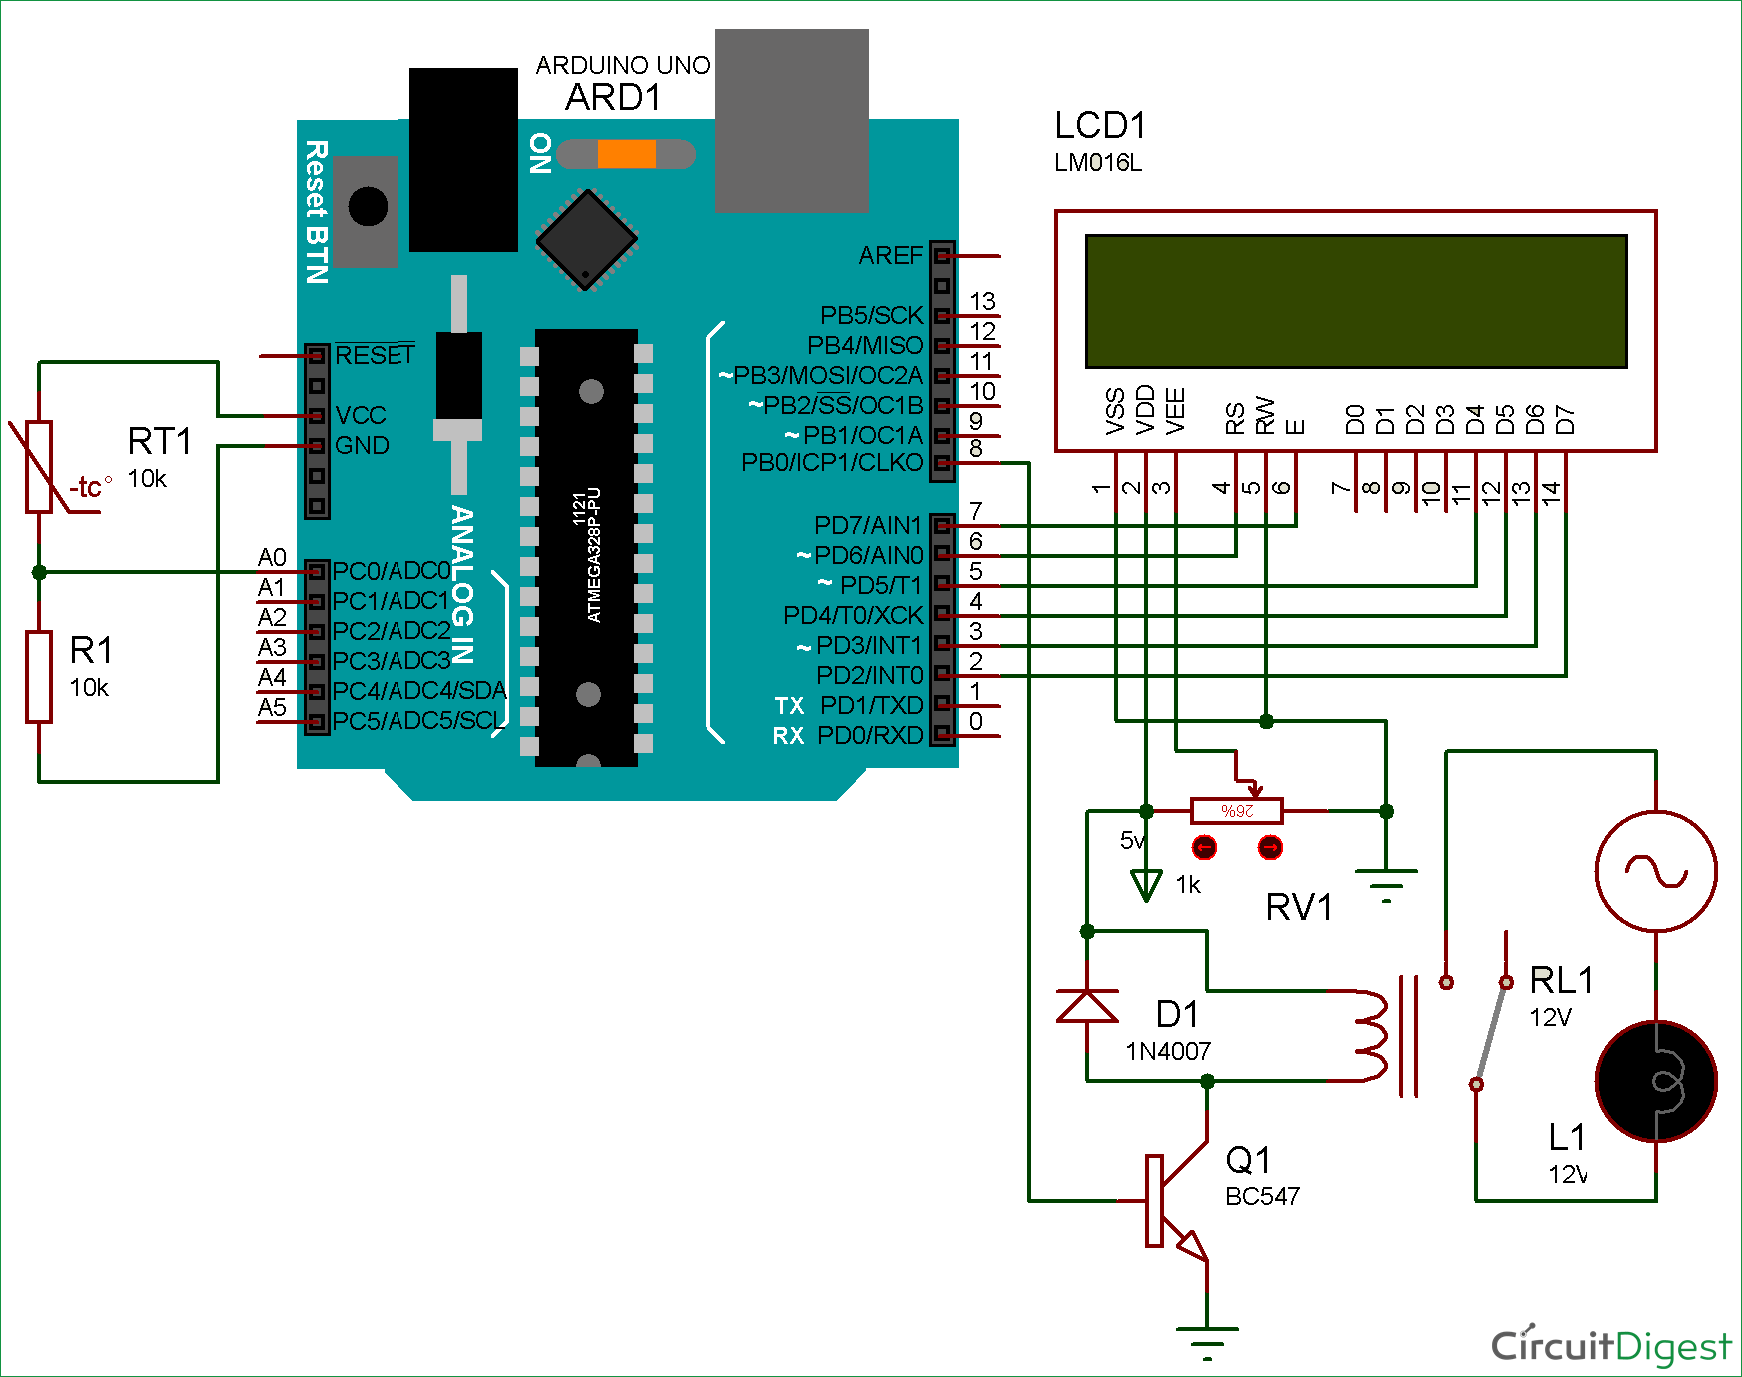 Circuit Diagram To Control Relay Using Arduino Based On Temperature For